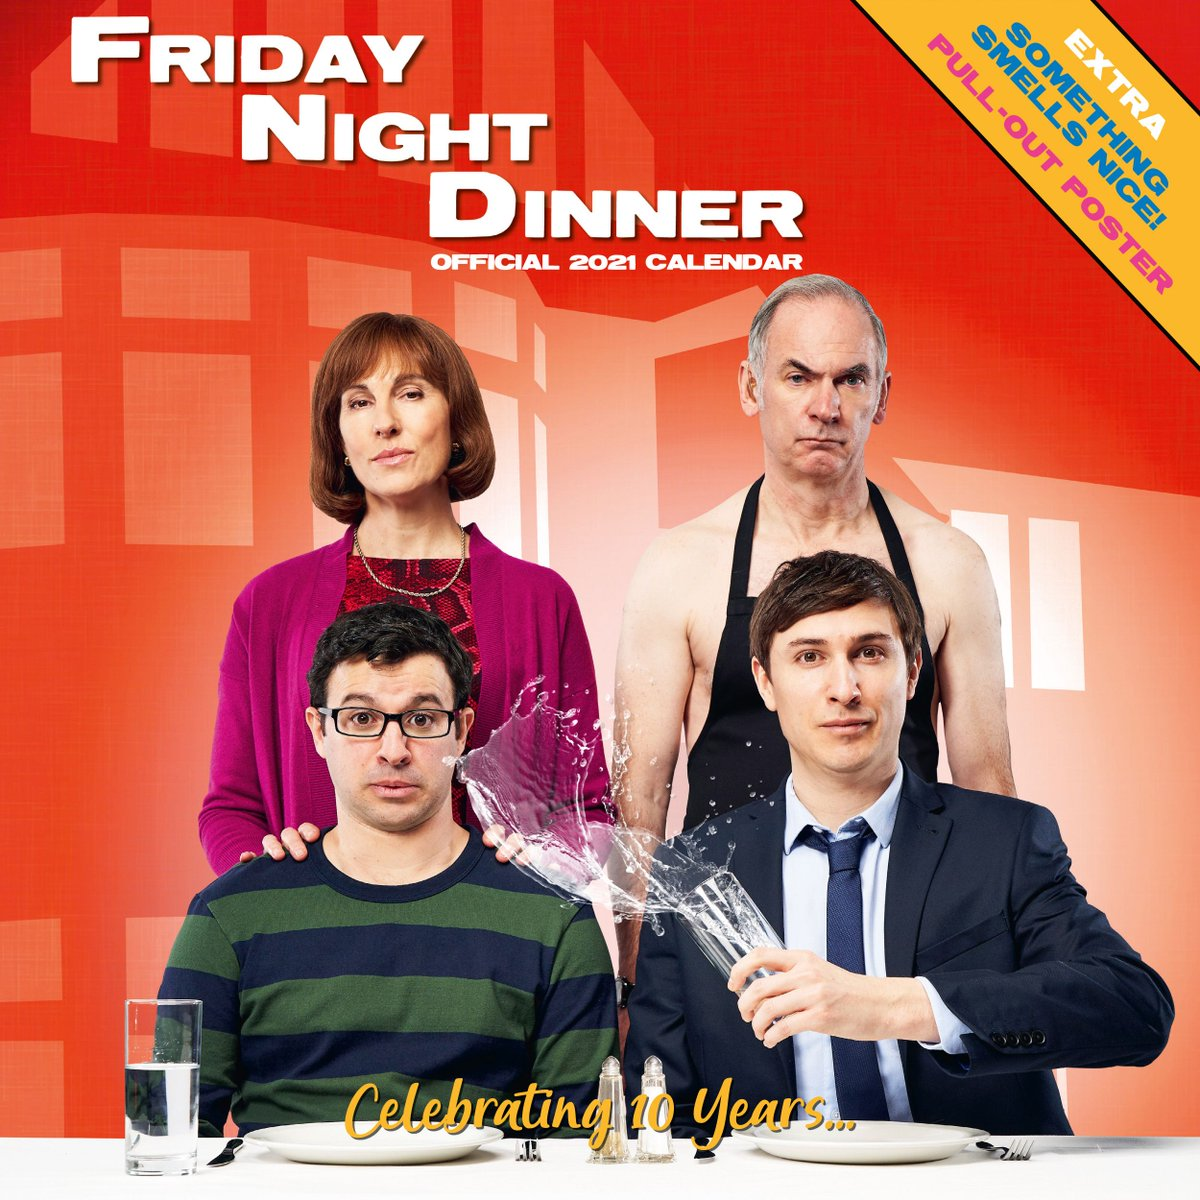 Share the year ahead with Jackie, Martin, Adam, Jonny and Jim with this fantastic first ever Official #FridayNightDinner Calendar for 2021 with an extra pull-out poster inside!   Available now from the official store: